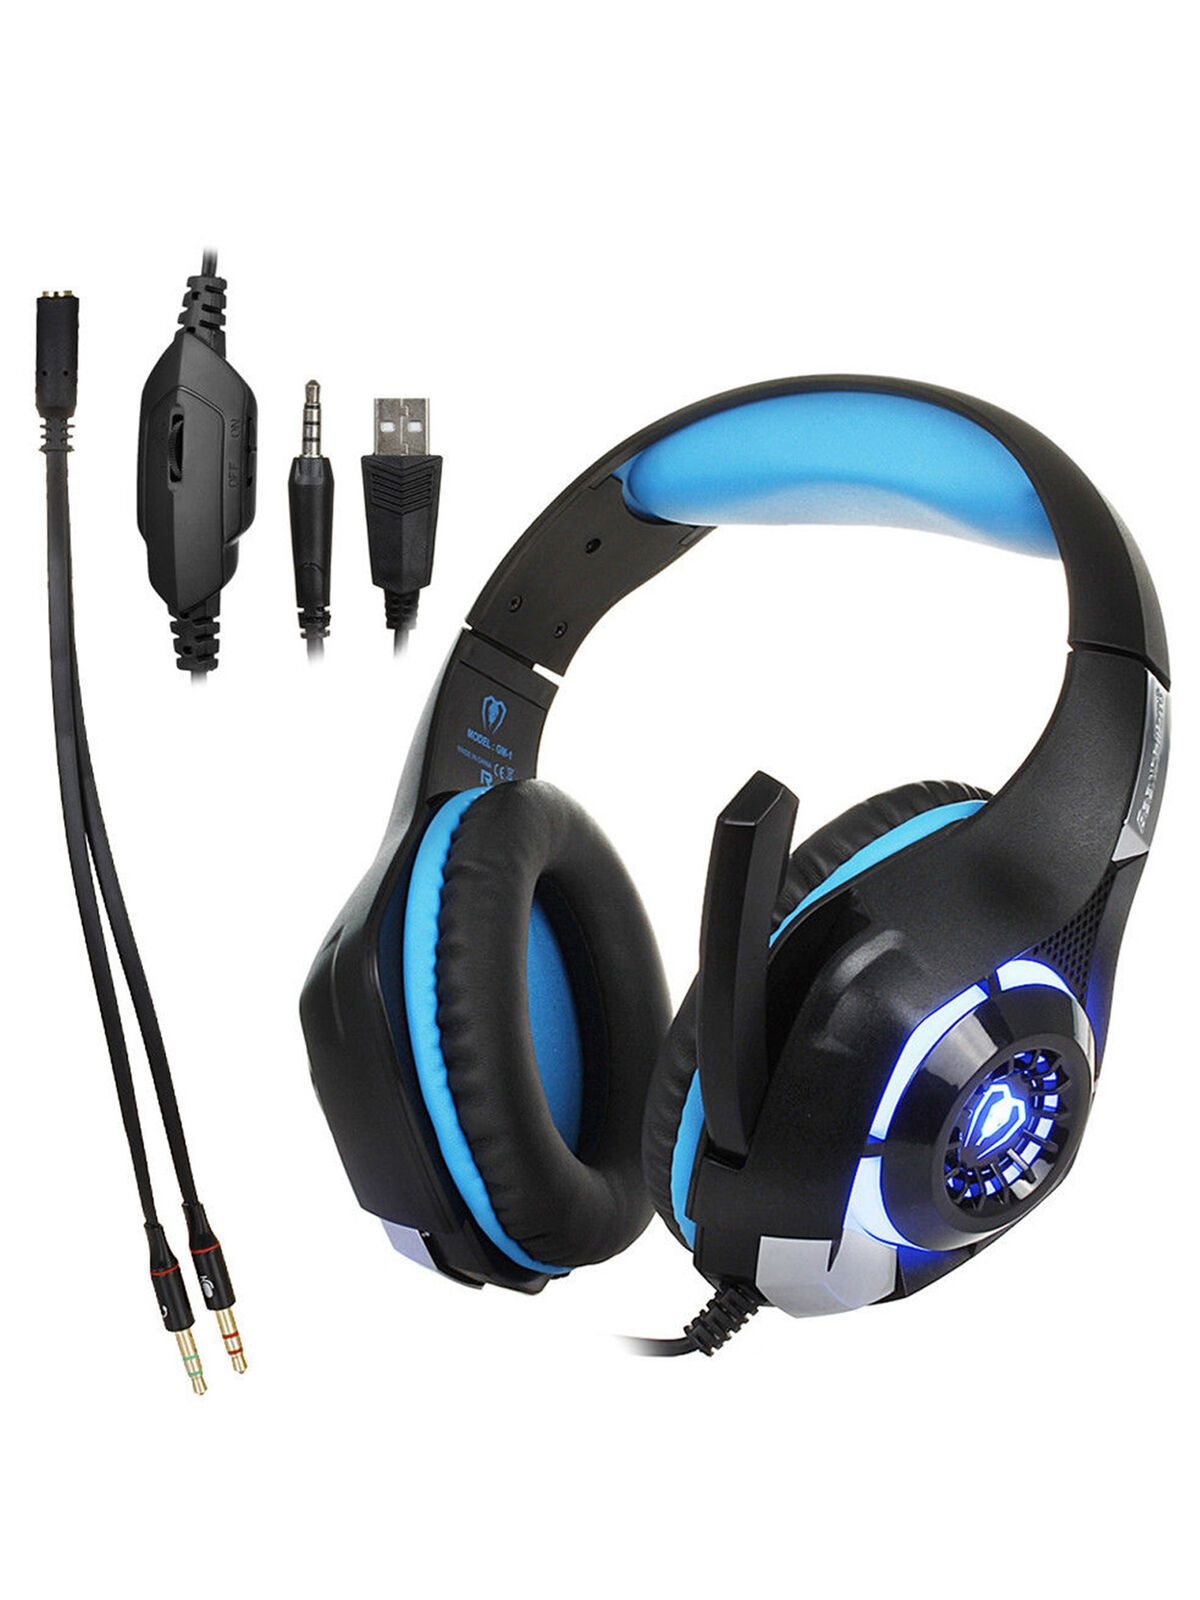 Loalirando Gaming Headset Headphone Surround Earphone Stereo With Mic For Pc Ps4 Xbox One A Walmart Com Xbox One Headset Gaming Headset Gaming Headphones